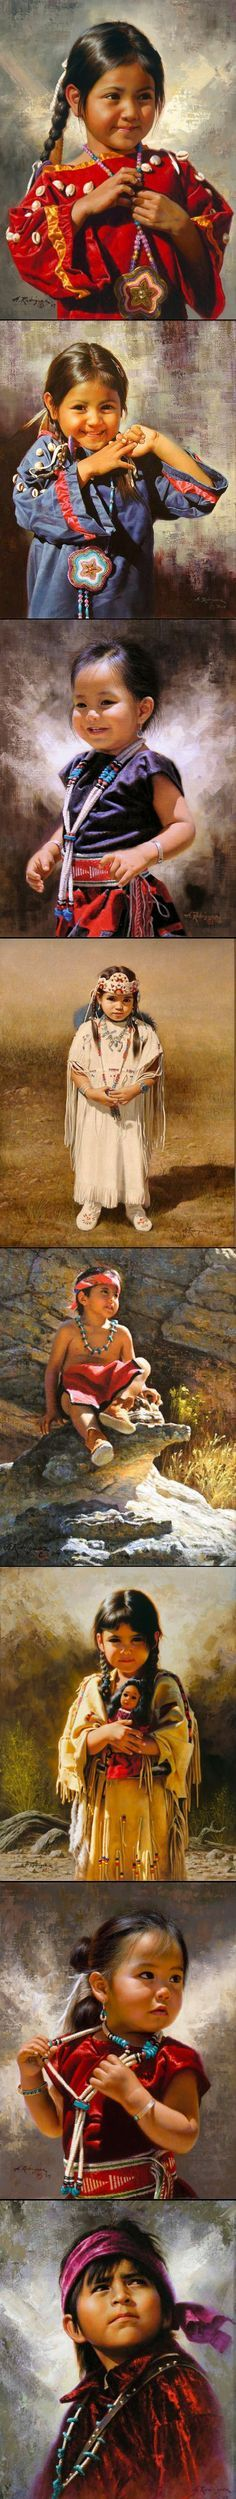 """The beautiful eyes of the American Indian children in the oil paintings of Alfredo Rodriguez American Painter) § """"Alfredo Rodriguez American)"""" by Marco from I am a Child ~ children in art history Native Child, Native American Children, Native American Beauty, American Indian Art, Native American History, American Indians, Native Indian, Native Art, Navajo"""